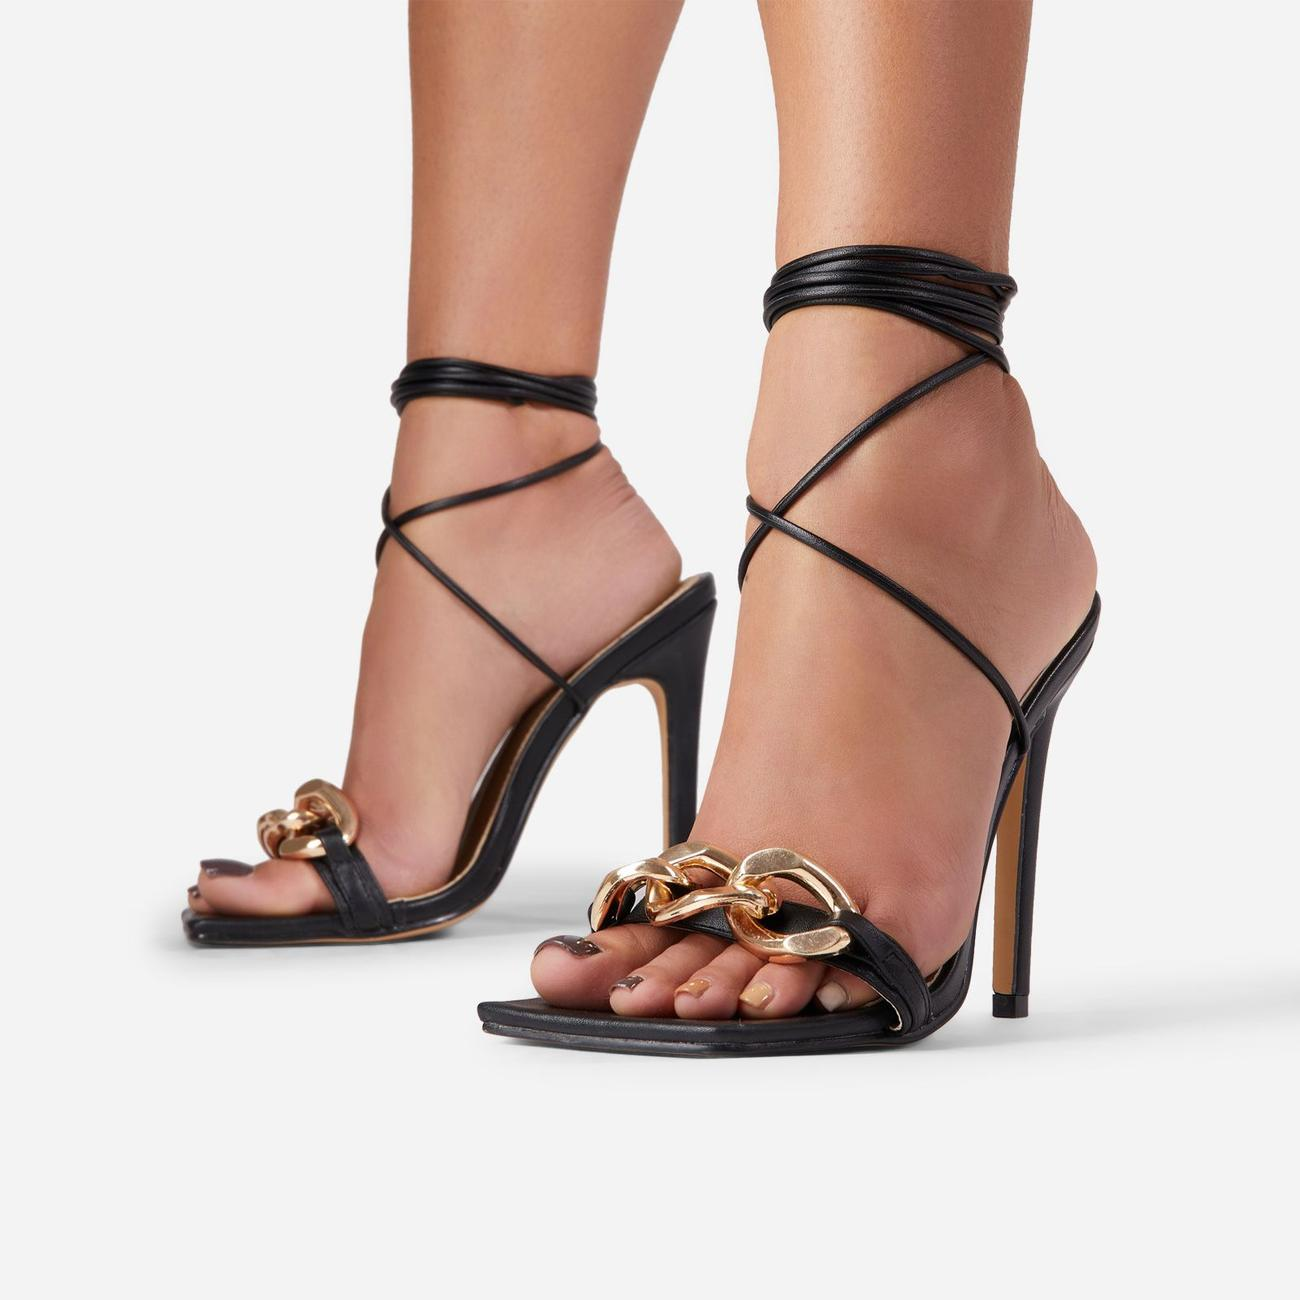 Ring-Leader Chunky Chain Detail Lace Up Square Toe Heel In Black Faux Leather Image 2